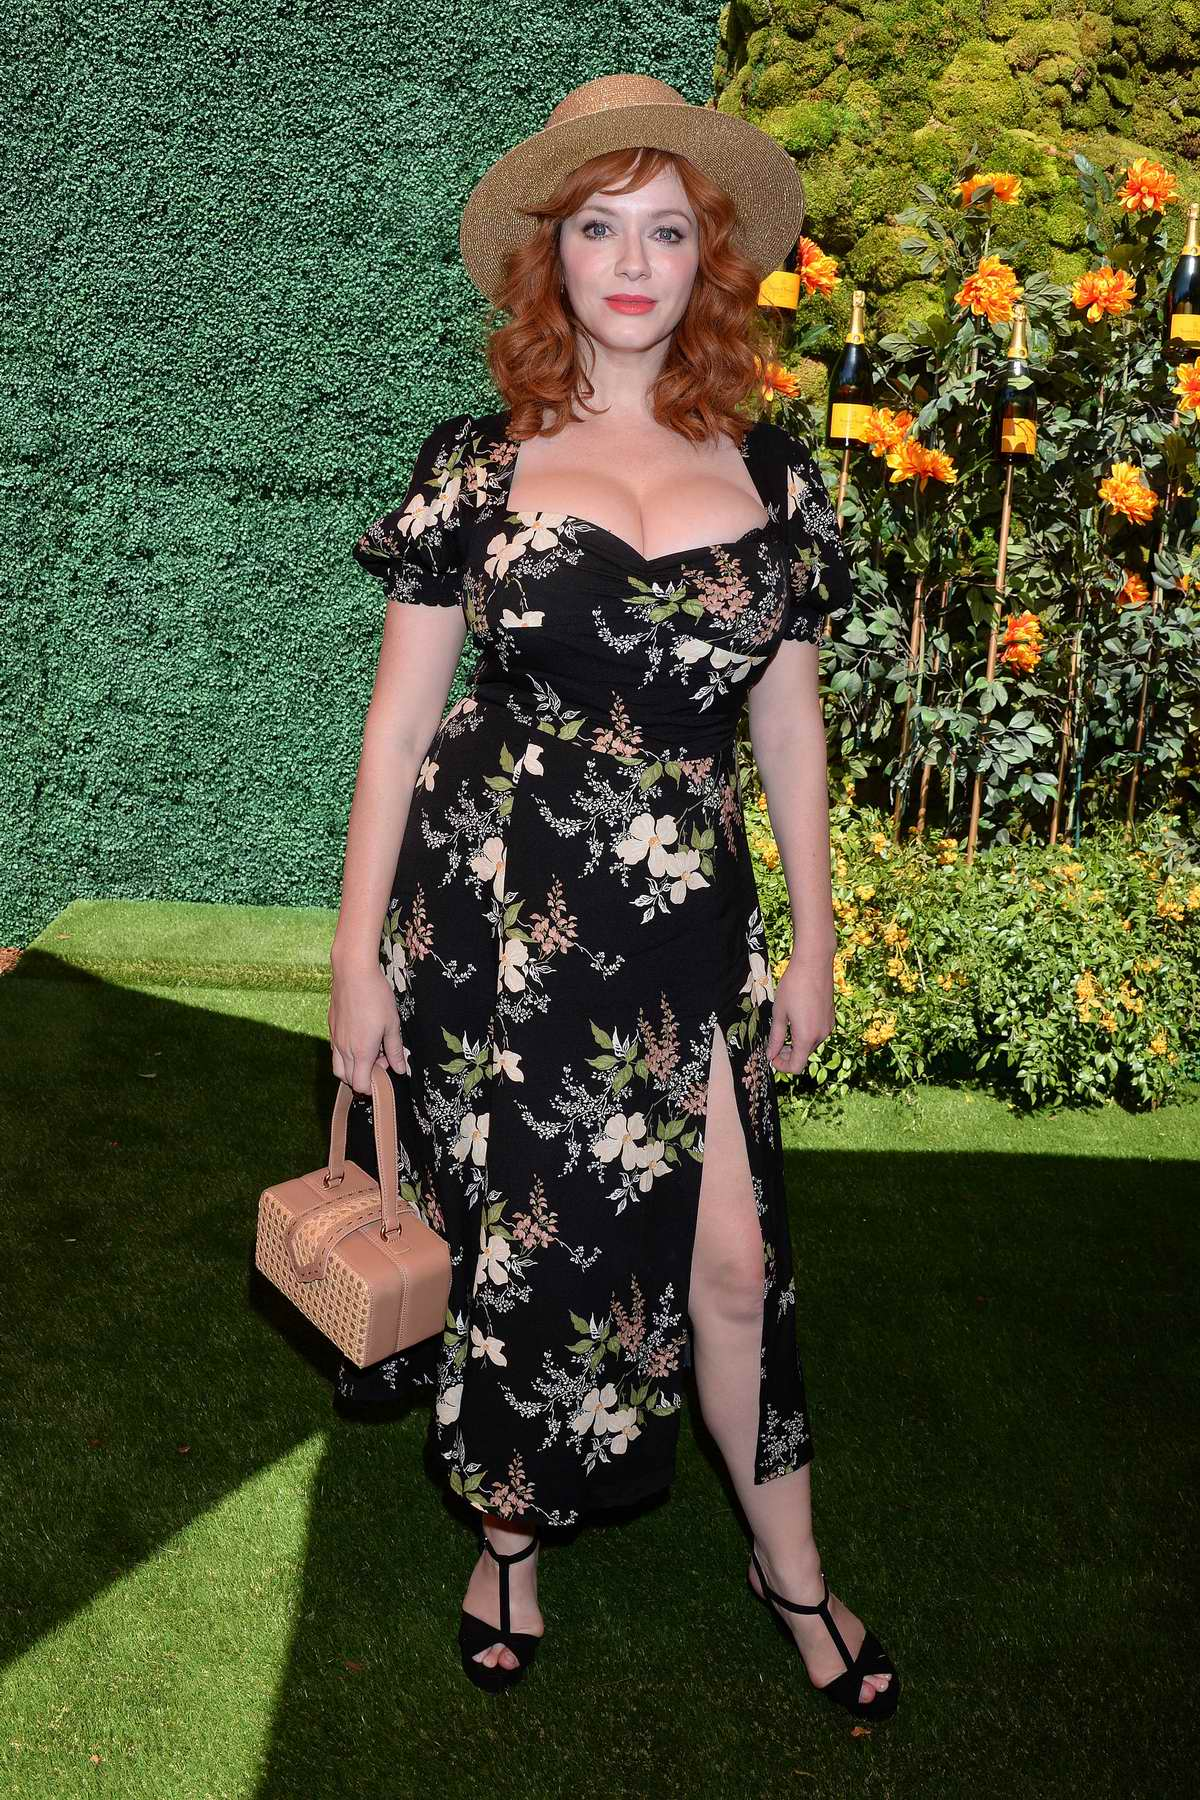 Christina Hendricks attends the 10th annual Veuve Clicquot Polo Classic at Will Rogers State Park in Los Angeles